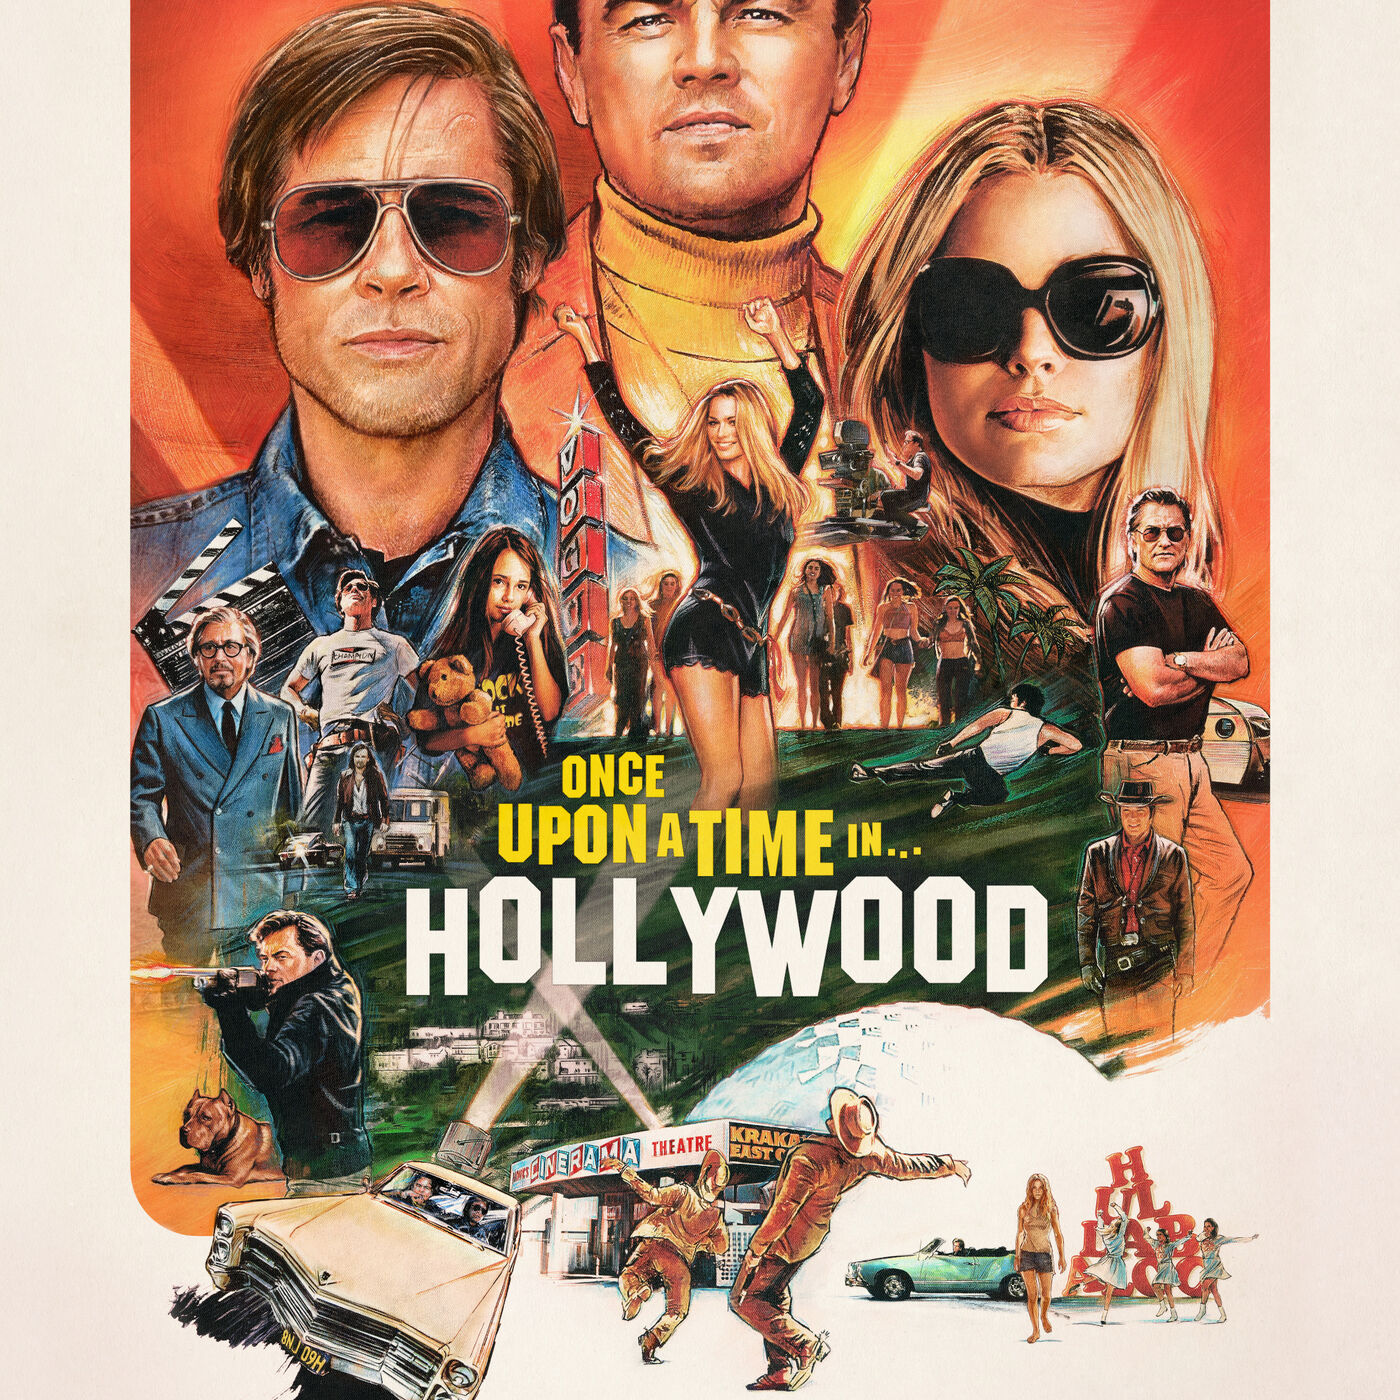 Tarantino pleases himself with Once Upon A Time In Hollywood